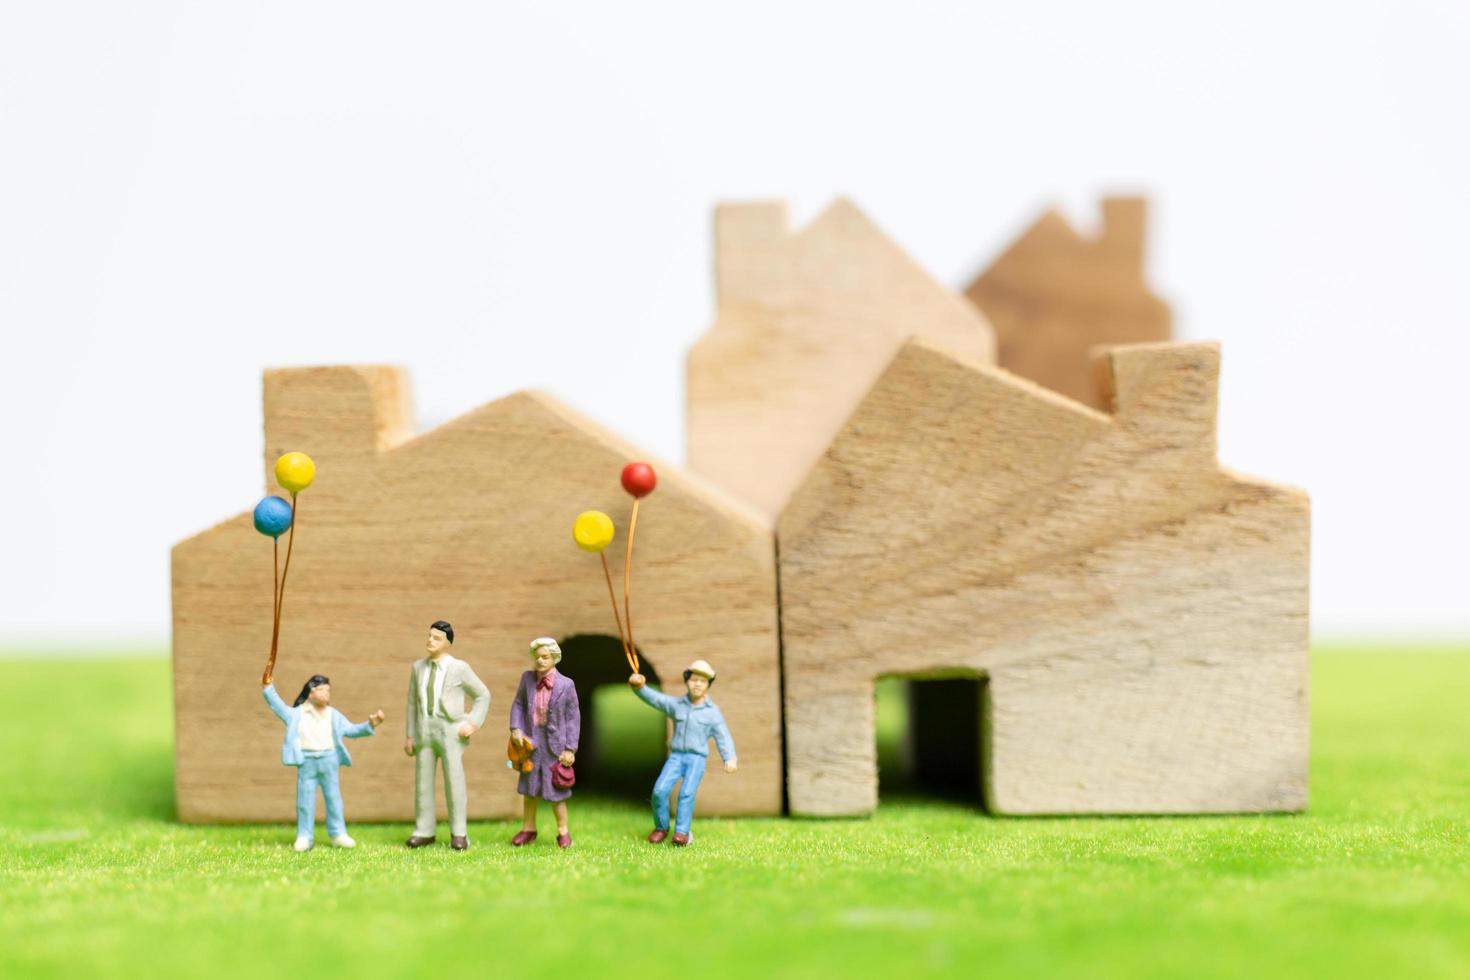 Miniature family walking in a field with balloons, happy family time concept photo